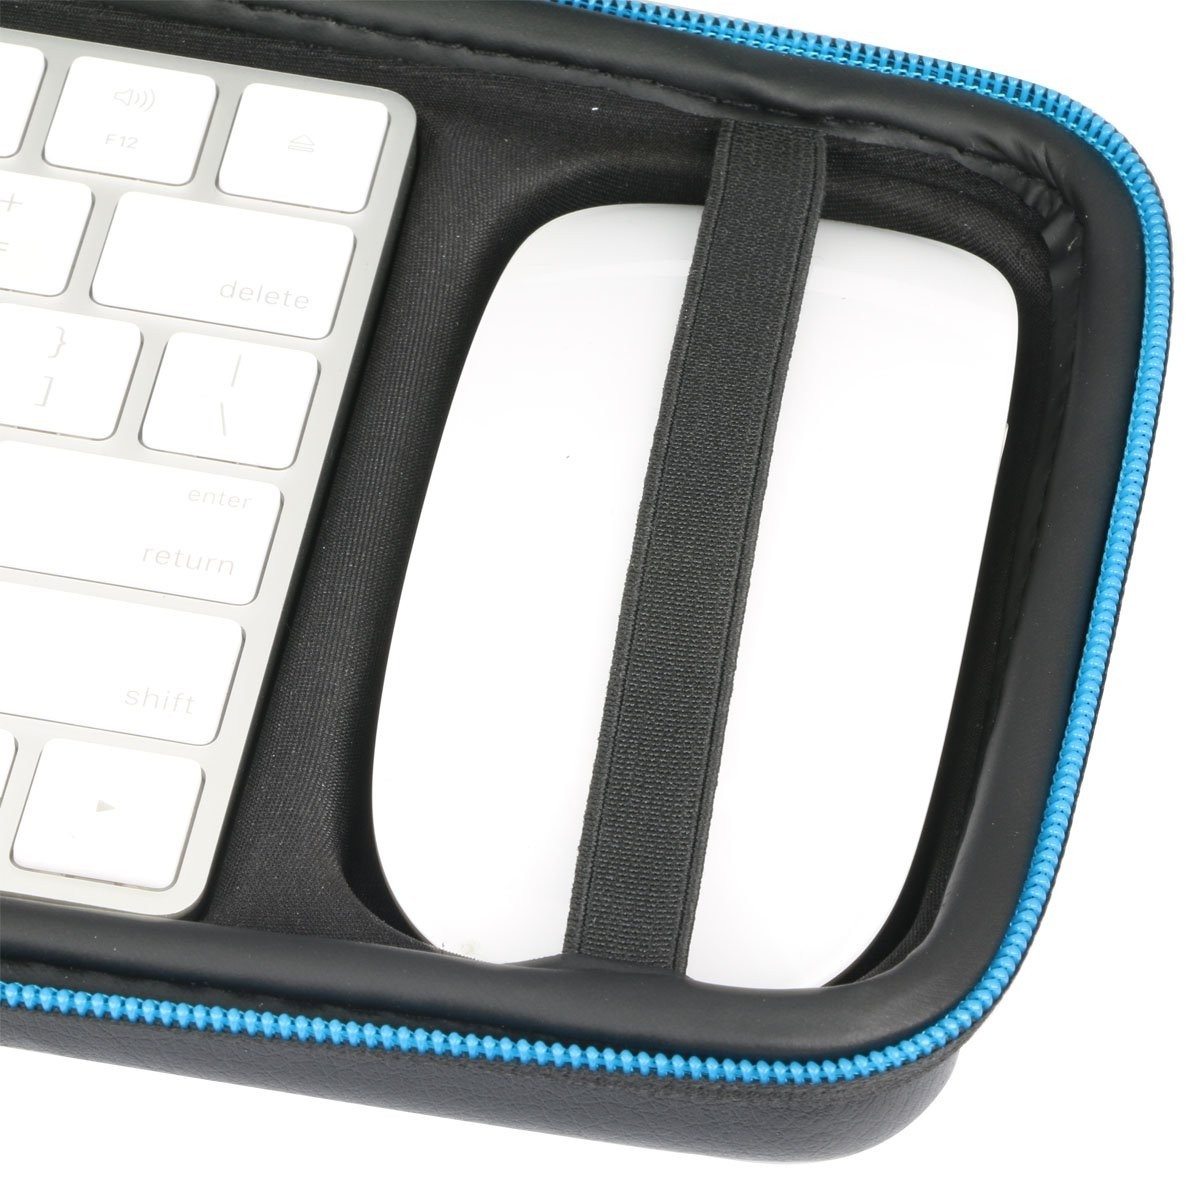 Baval Hard Case Portable Bag Replacement for Apple Magic Wireless Keyboard  / Apple Magic Mouse 2 - Black, B0762KZLFS